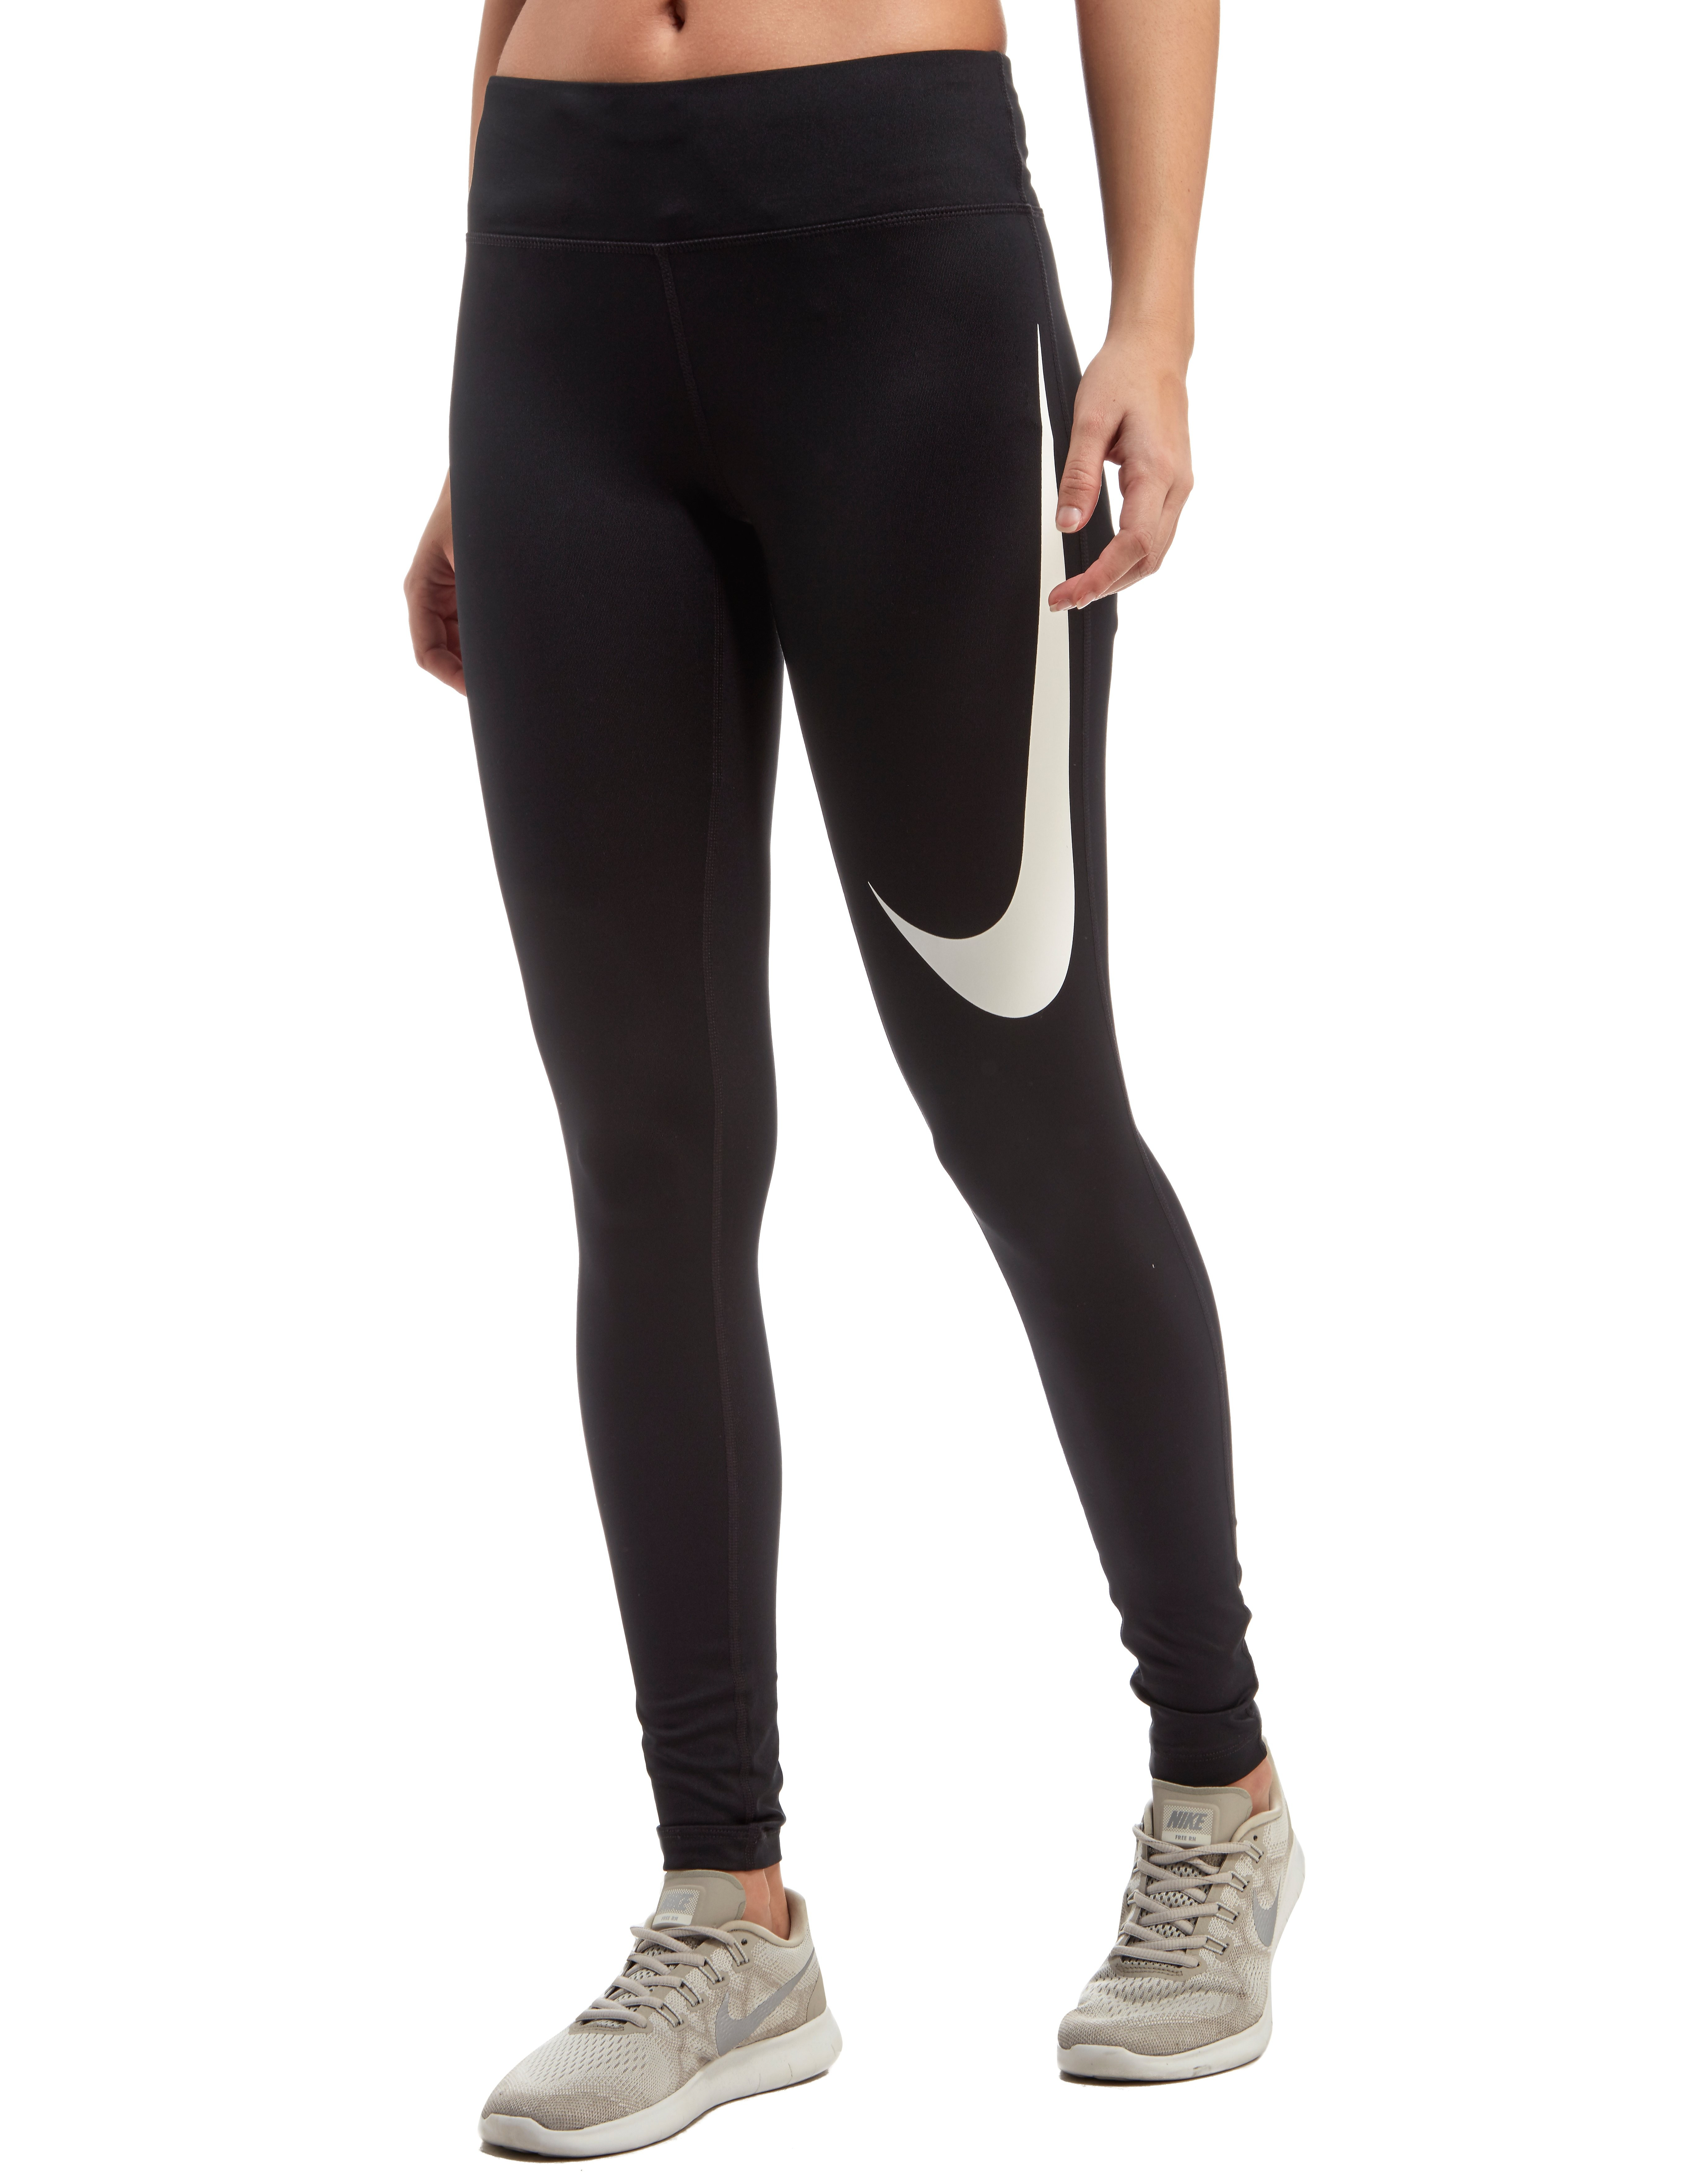 Nike Swoosh Power Essential Tights